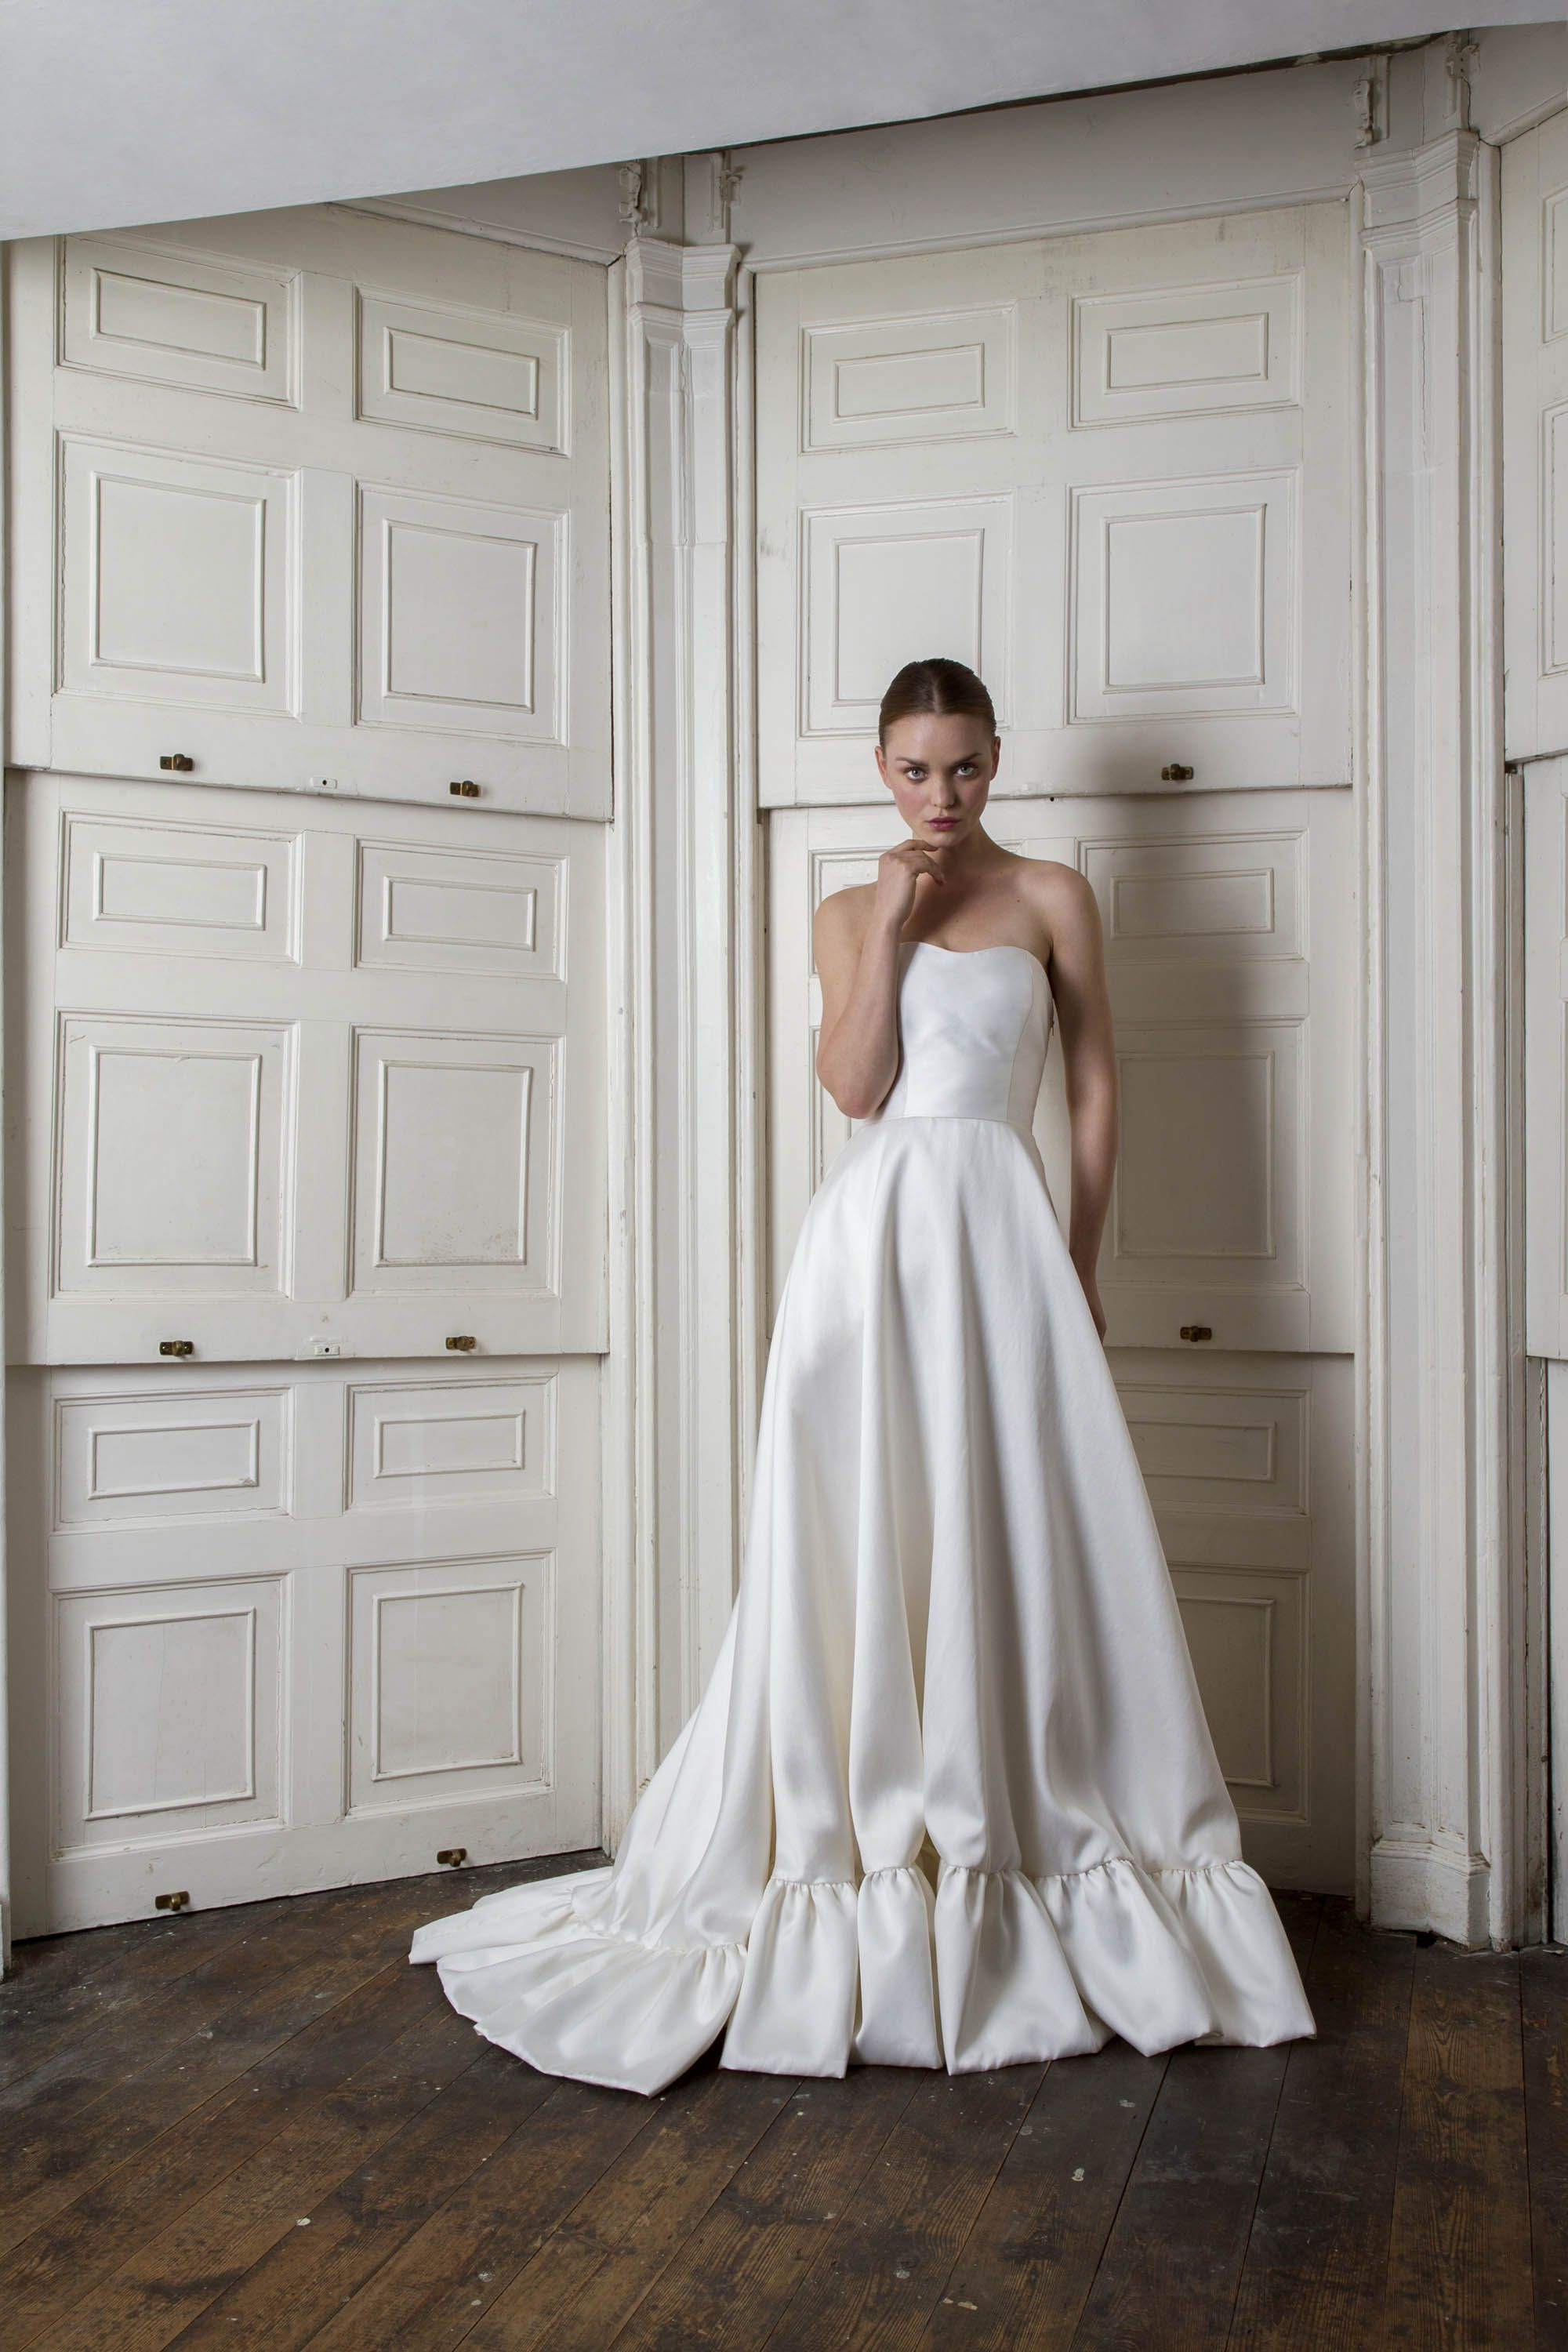 The Latest Big And Beautiful Ball Gown Wedding Dresses Weddingdresses Weddingballgown Weddinggown: Big Ugly Wedding Dresses At Websimilar.org